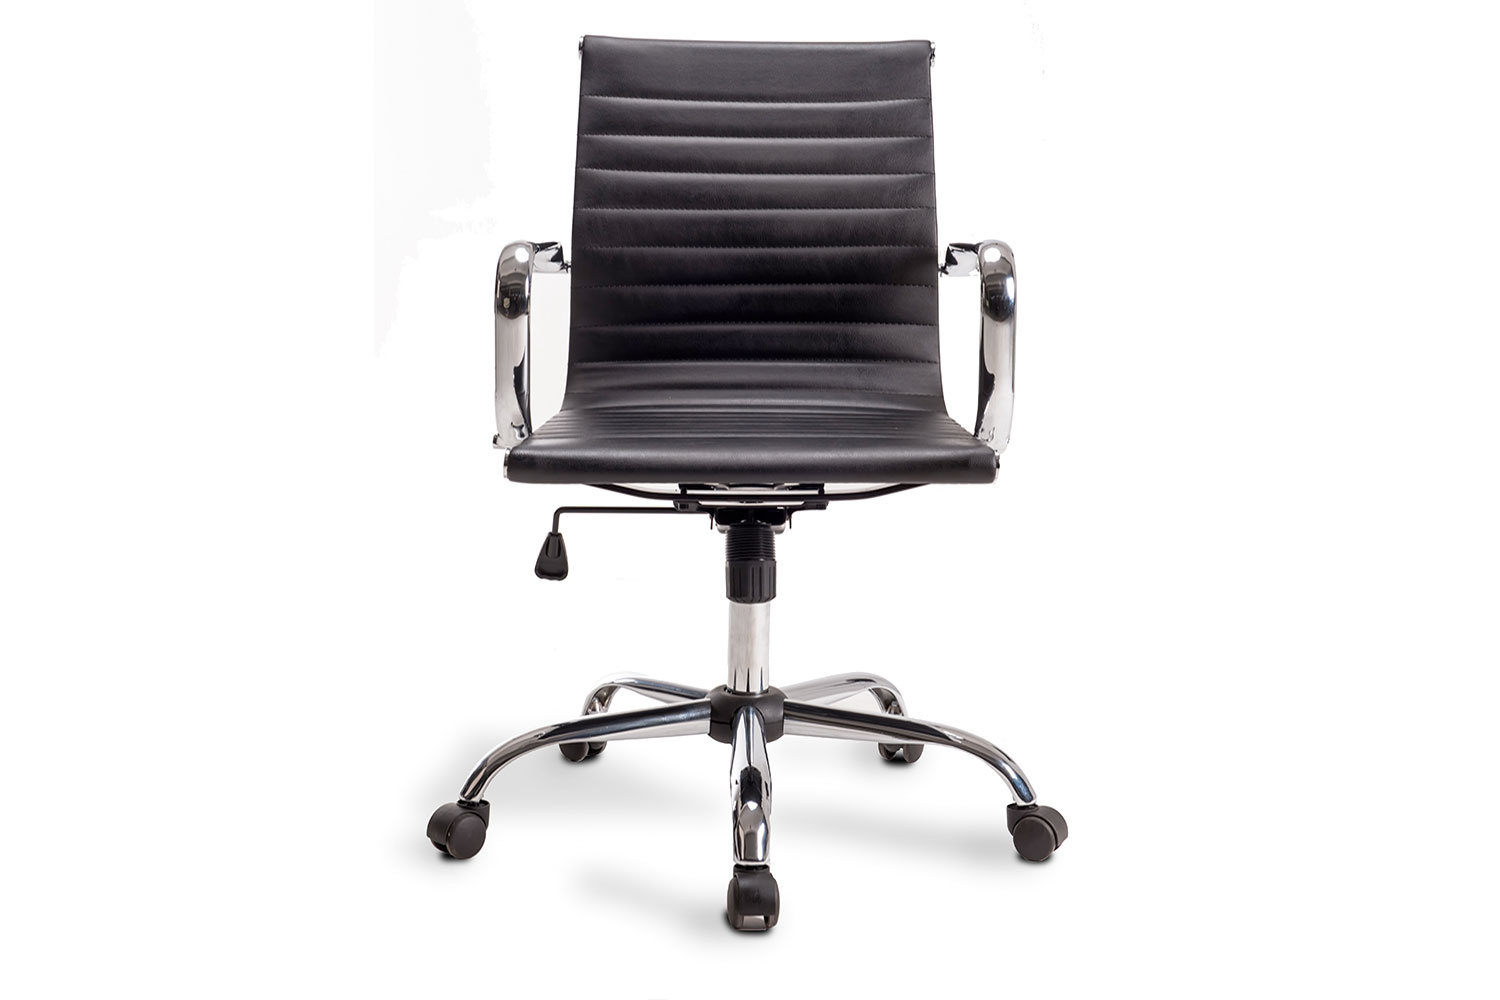 swivel chair harvey norman round folding chairs line office new zealand